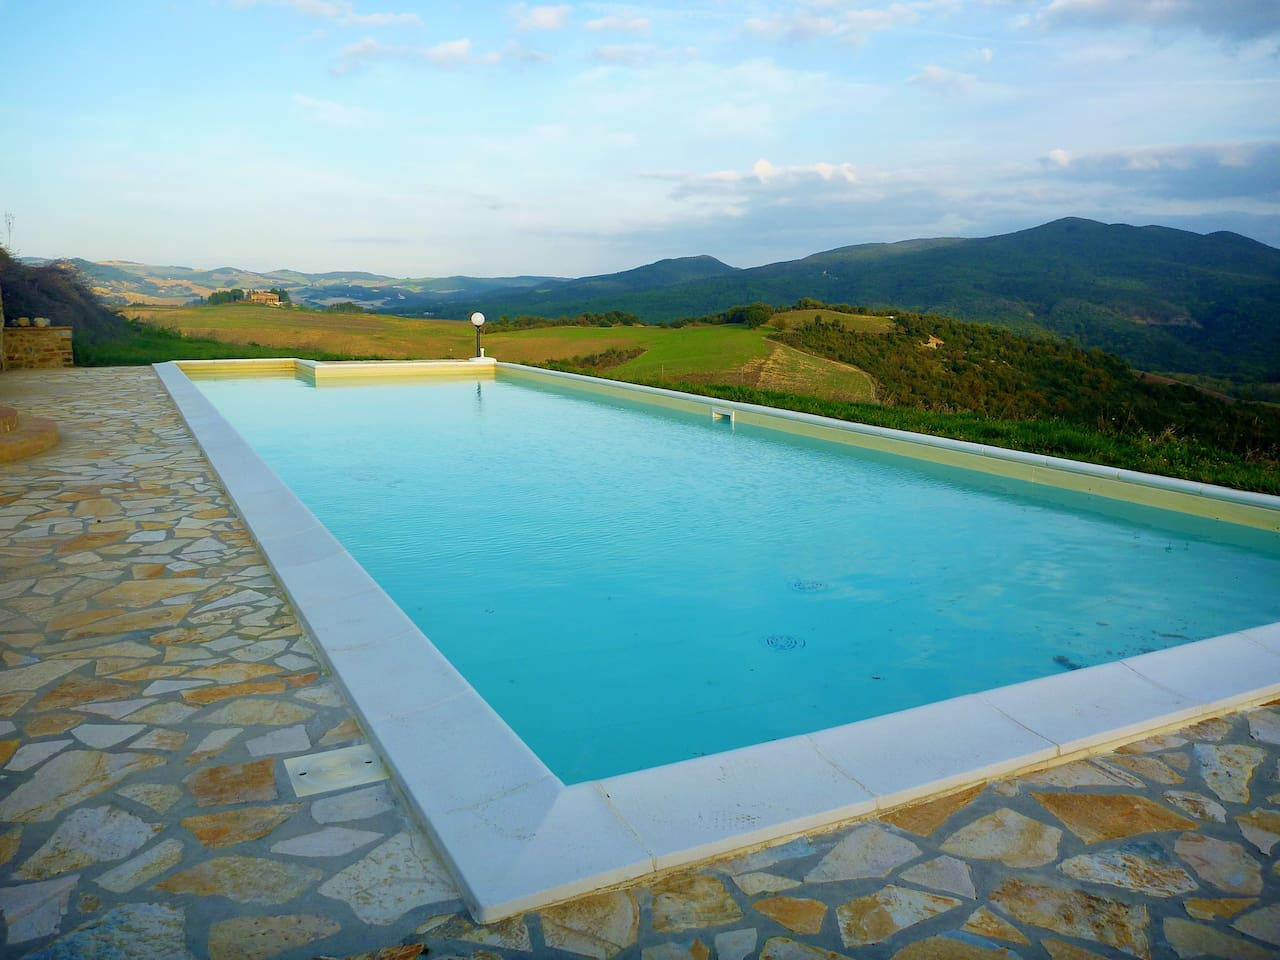 A brilliant pool surrounded by nature with glorious views.